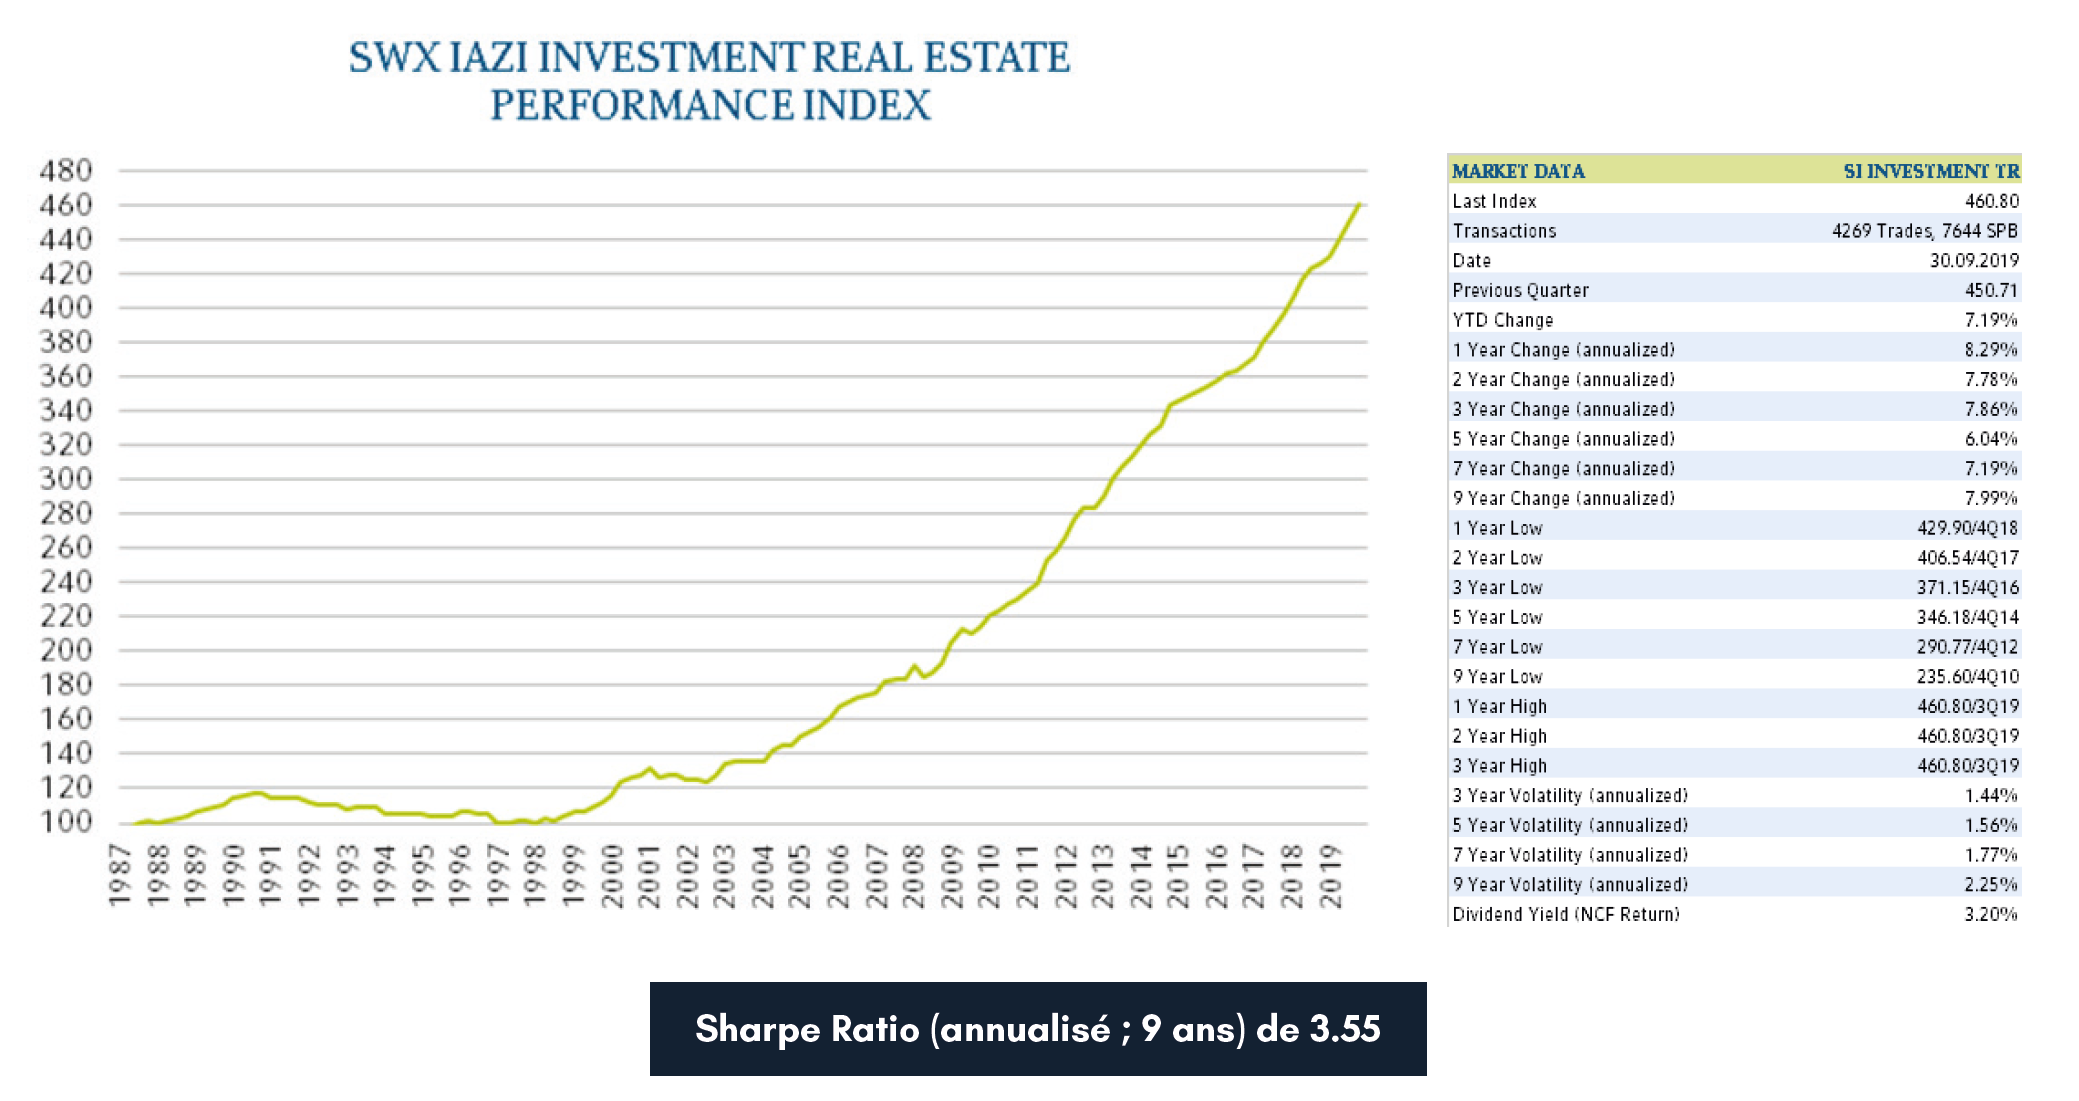 SWX IAZI Investment Real estate performance index